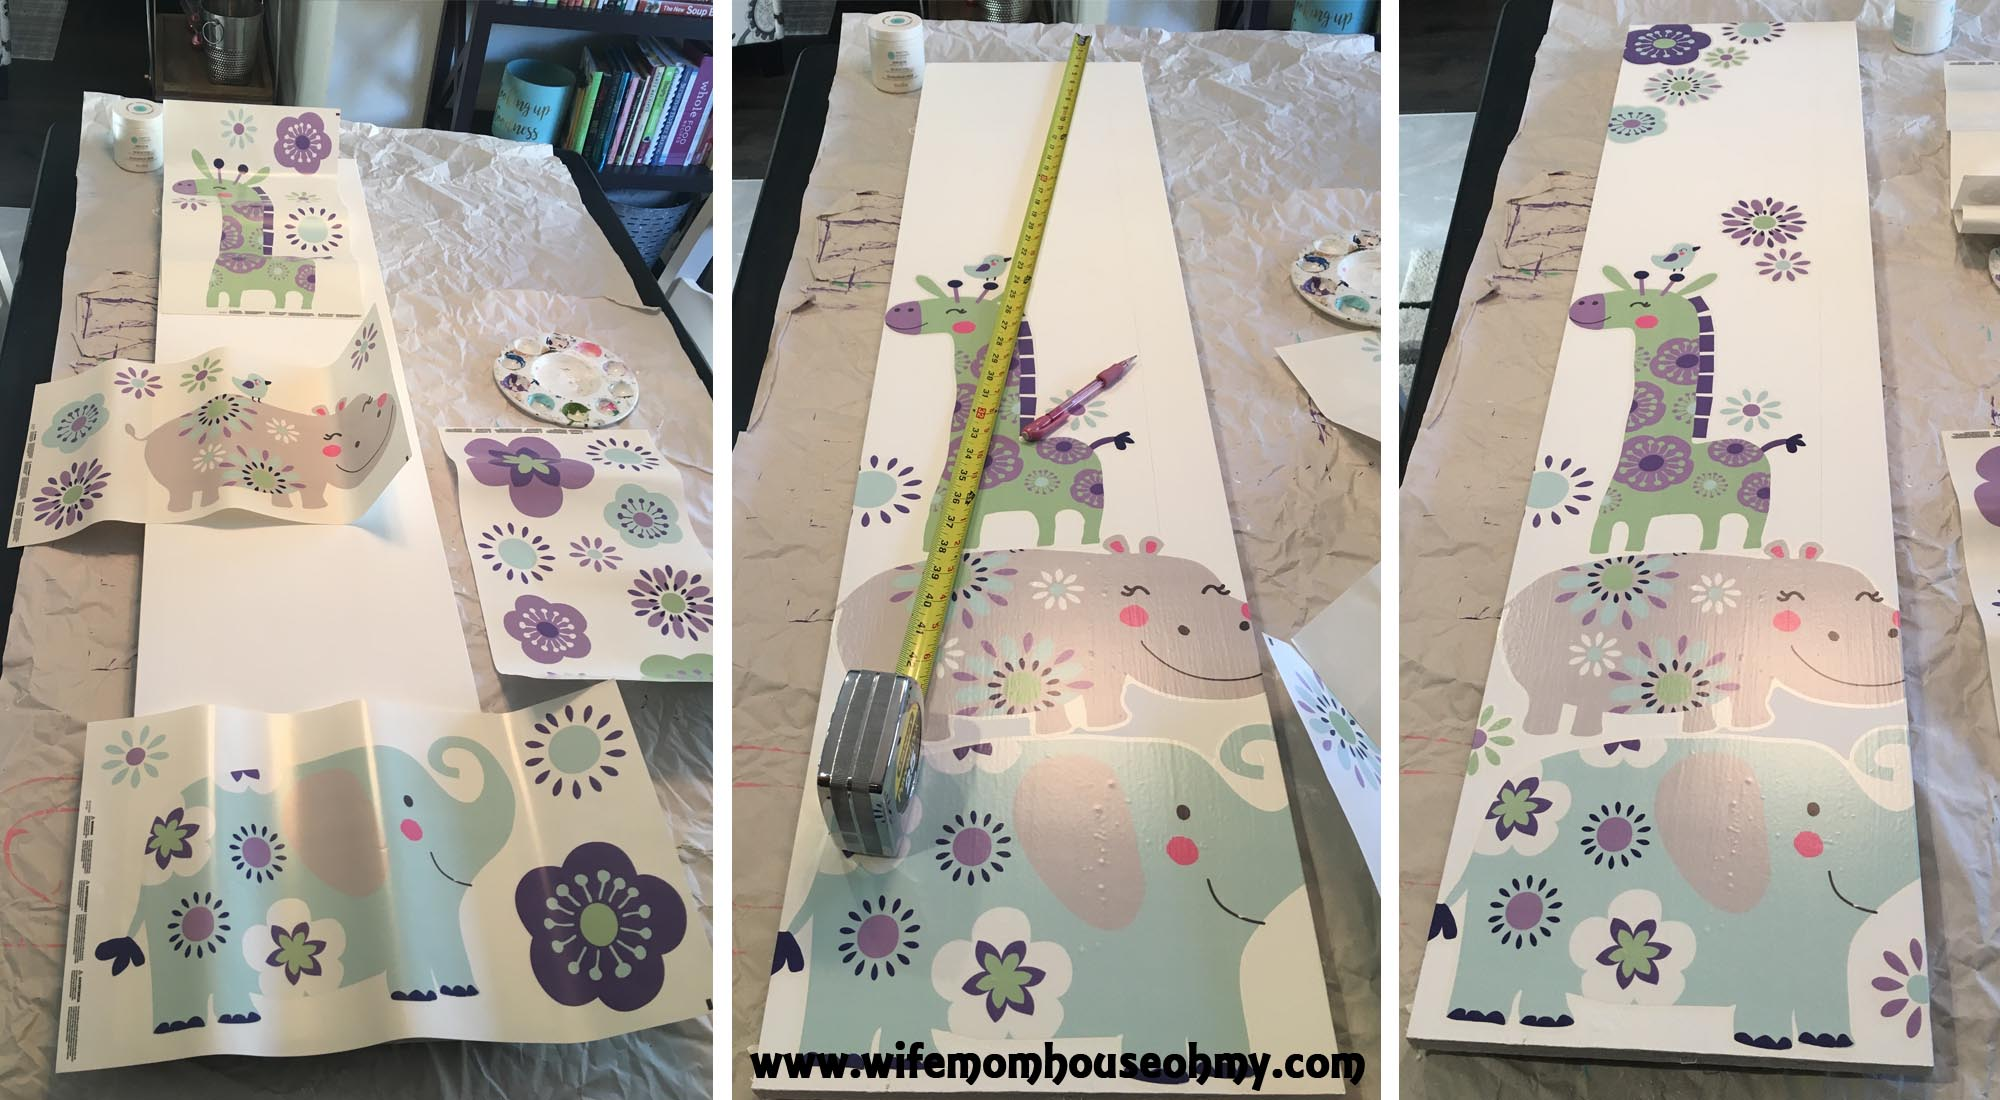 Personalizing a nursery diy growth chart using a stud finder i located the studs in the wall where i planned on hanging baby girls growth chart making sure the growth chart geenschuldenfo Image collections